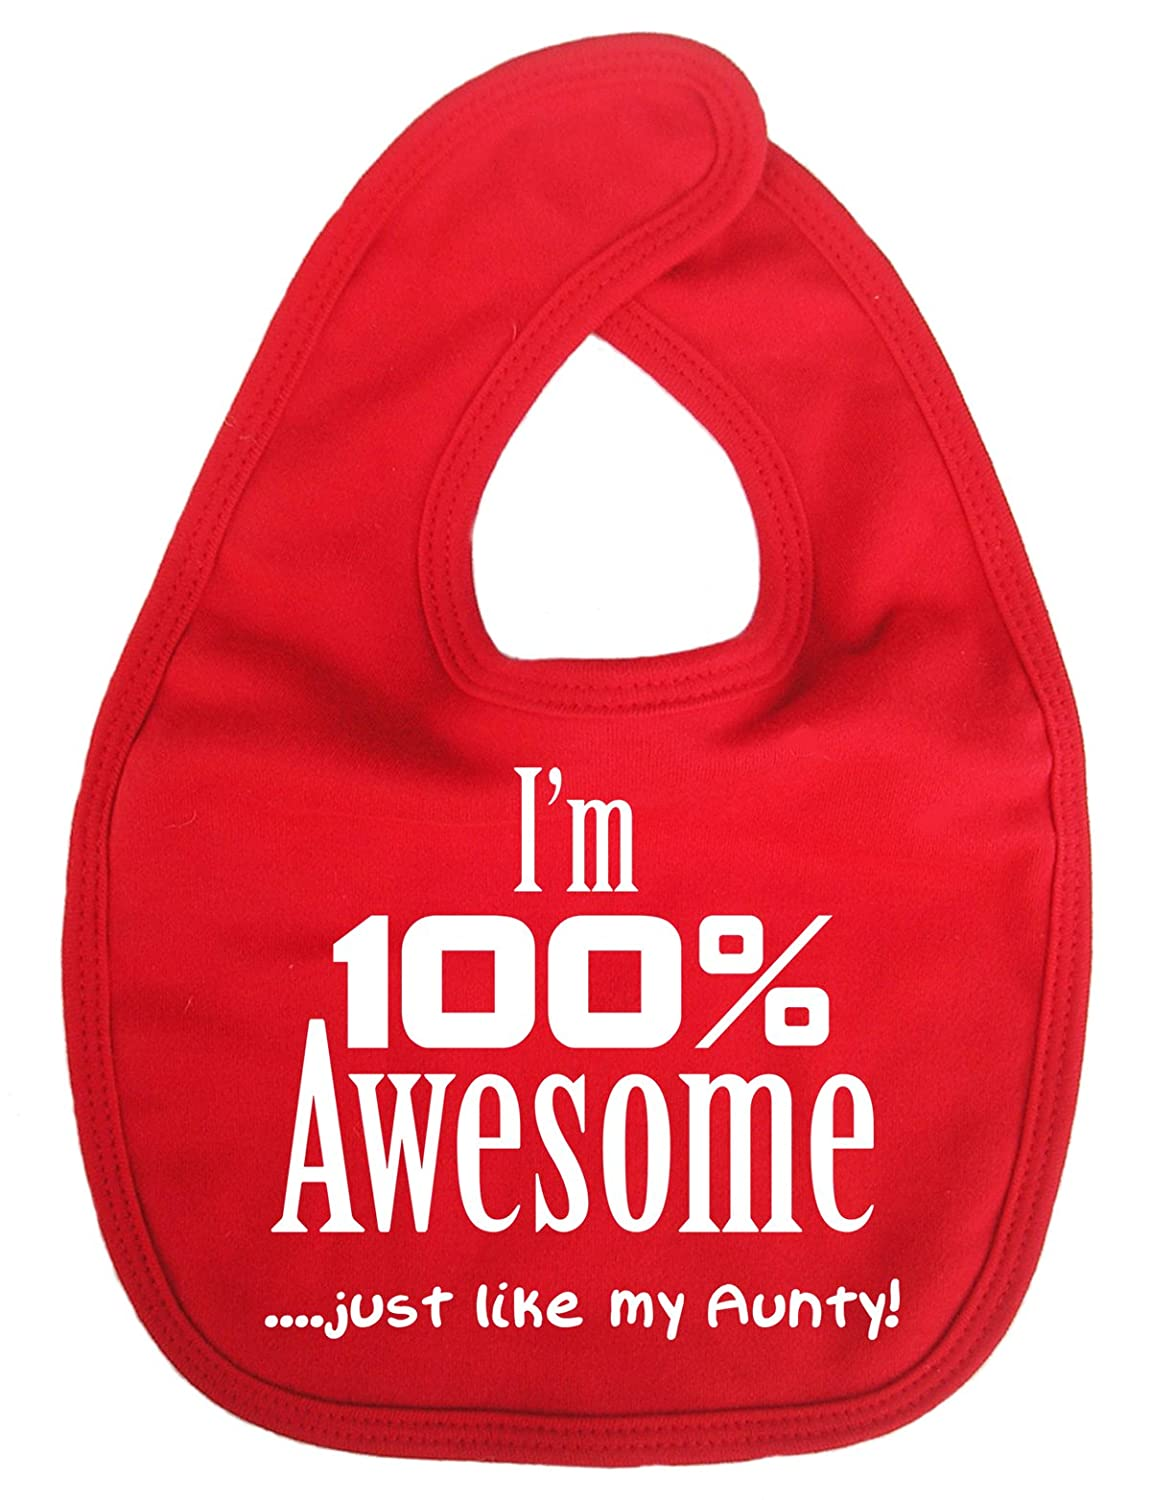 Dirty Fingers, I'm 100% awesome just like my Aunty, Baby Unisex Bib, White DFBIB100%awesomeW